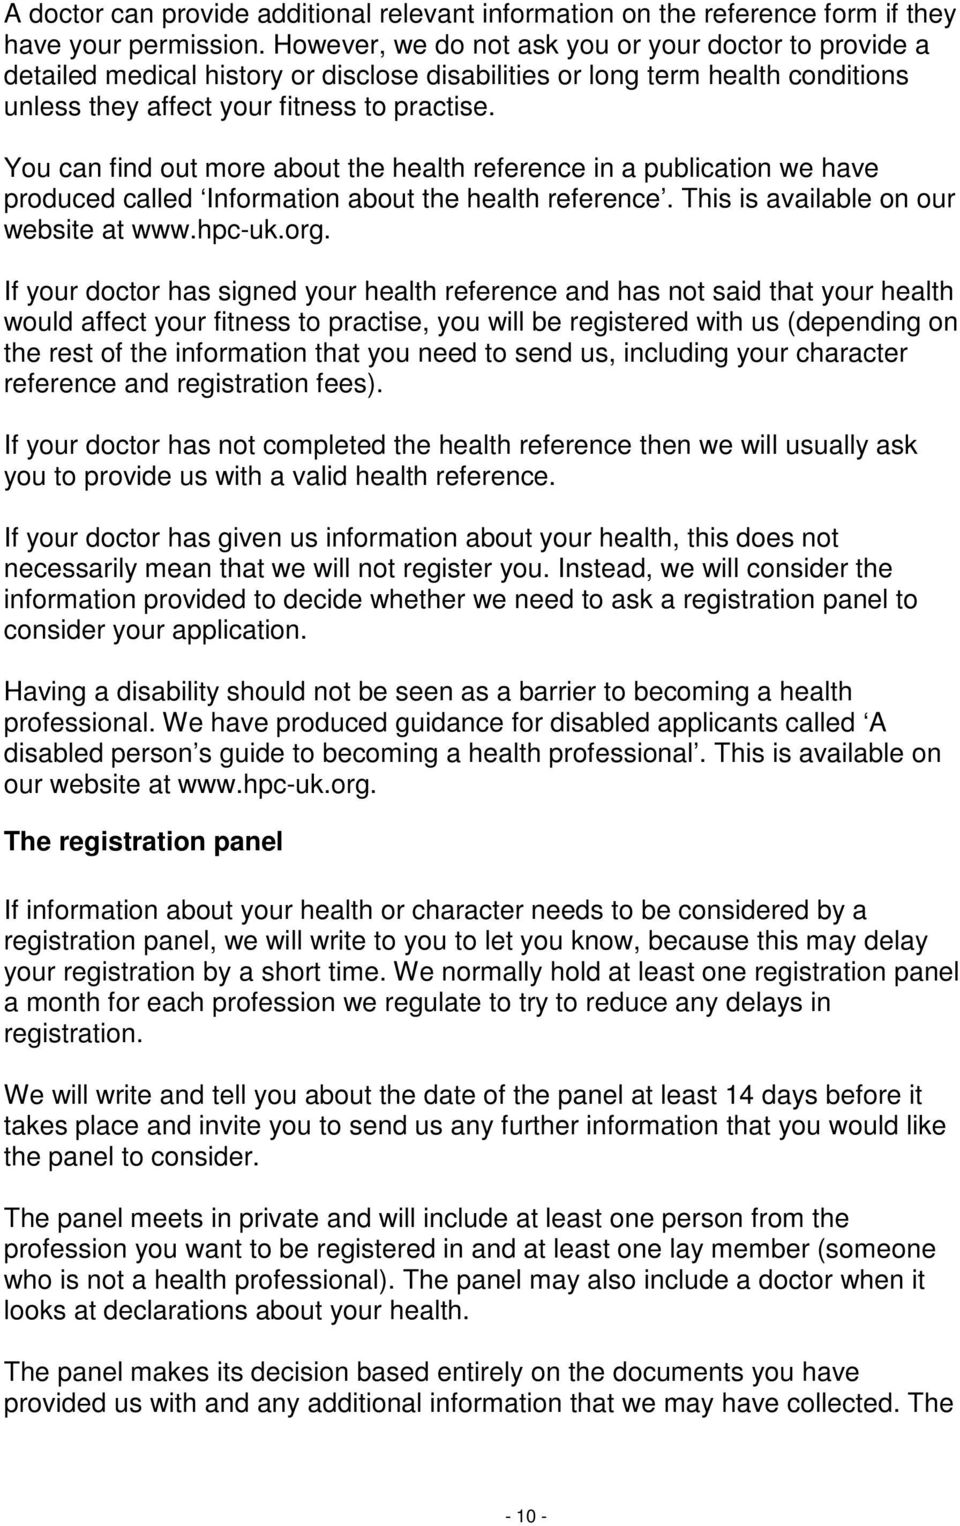 You can find out more about the health reference in a publication we have produced called Information about the health reference. This is available on our website at www.hpc-uk.org.